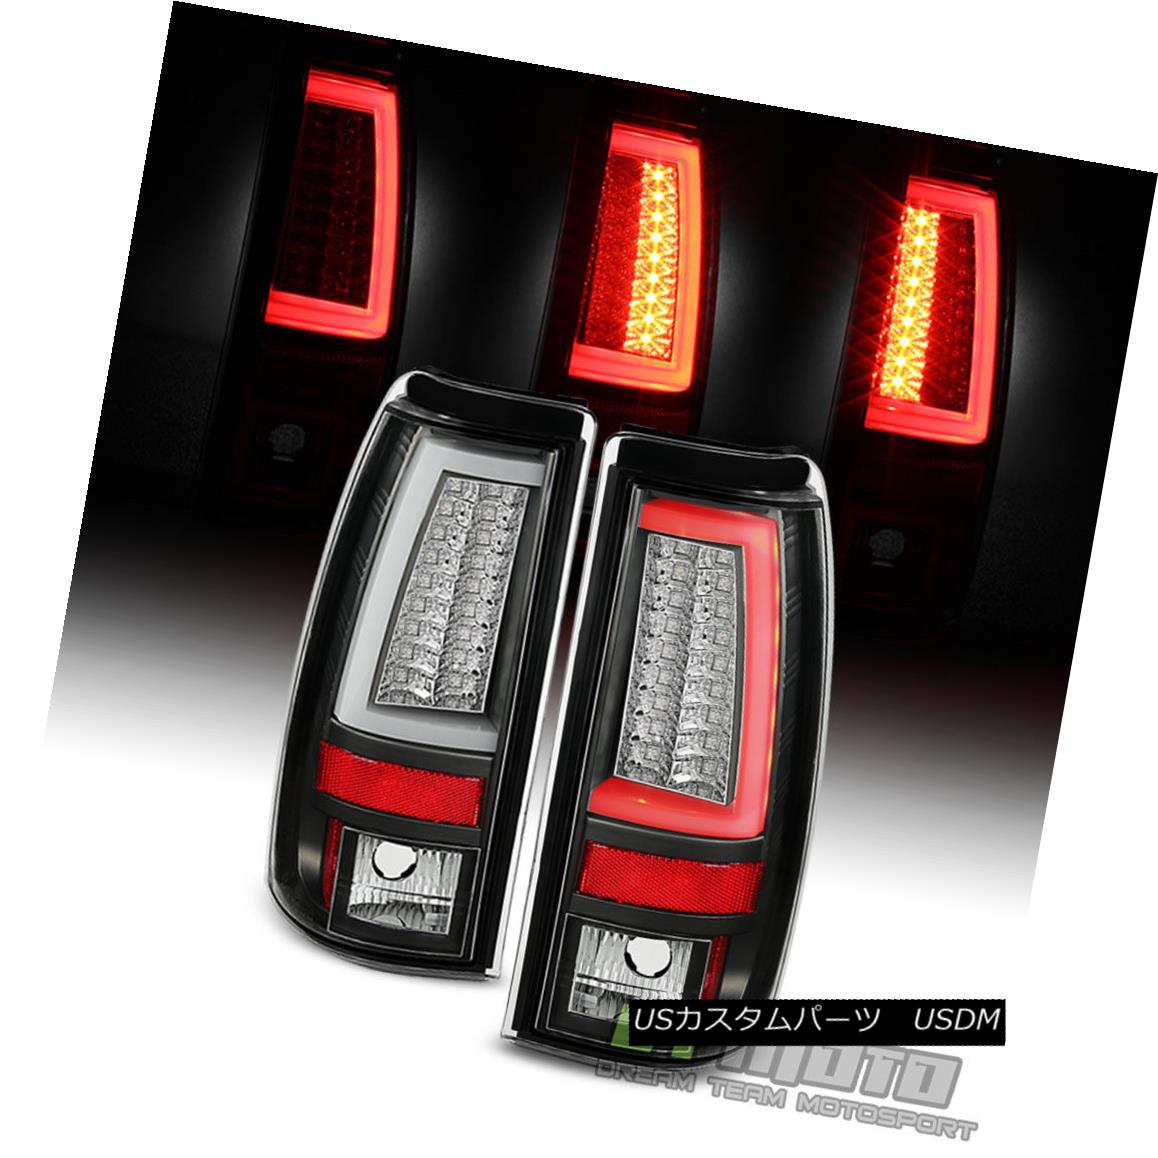 テールライト Blk 1999-2002 Chevy Silverado 99-06 GMC Sierra LED Tube Tail Lights Brake Lamps Blk 1999-2002 Chevy Silverado 99-06 GMC Sierra LEDチューブテールライトブレーキランプ